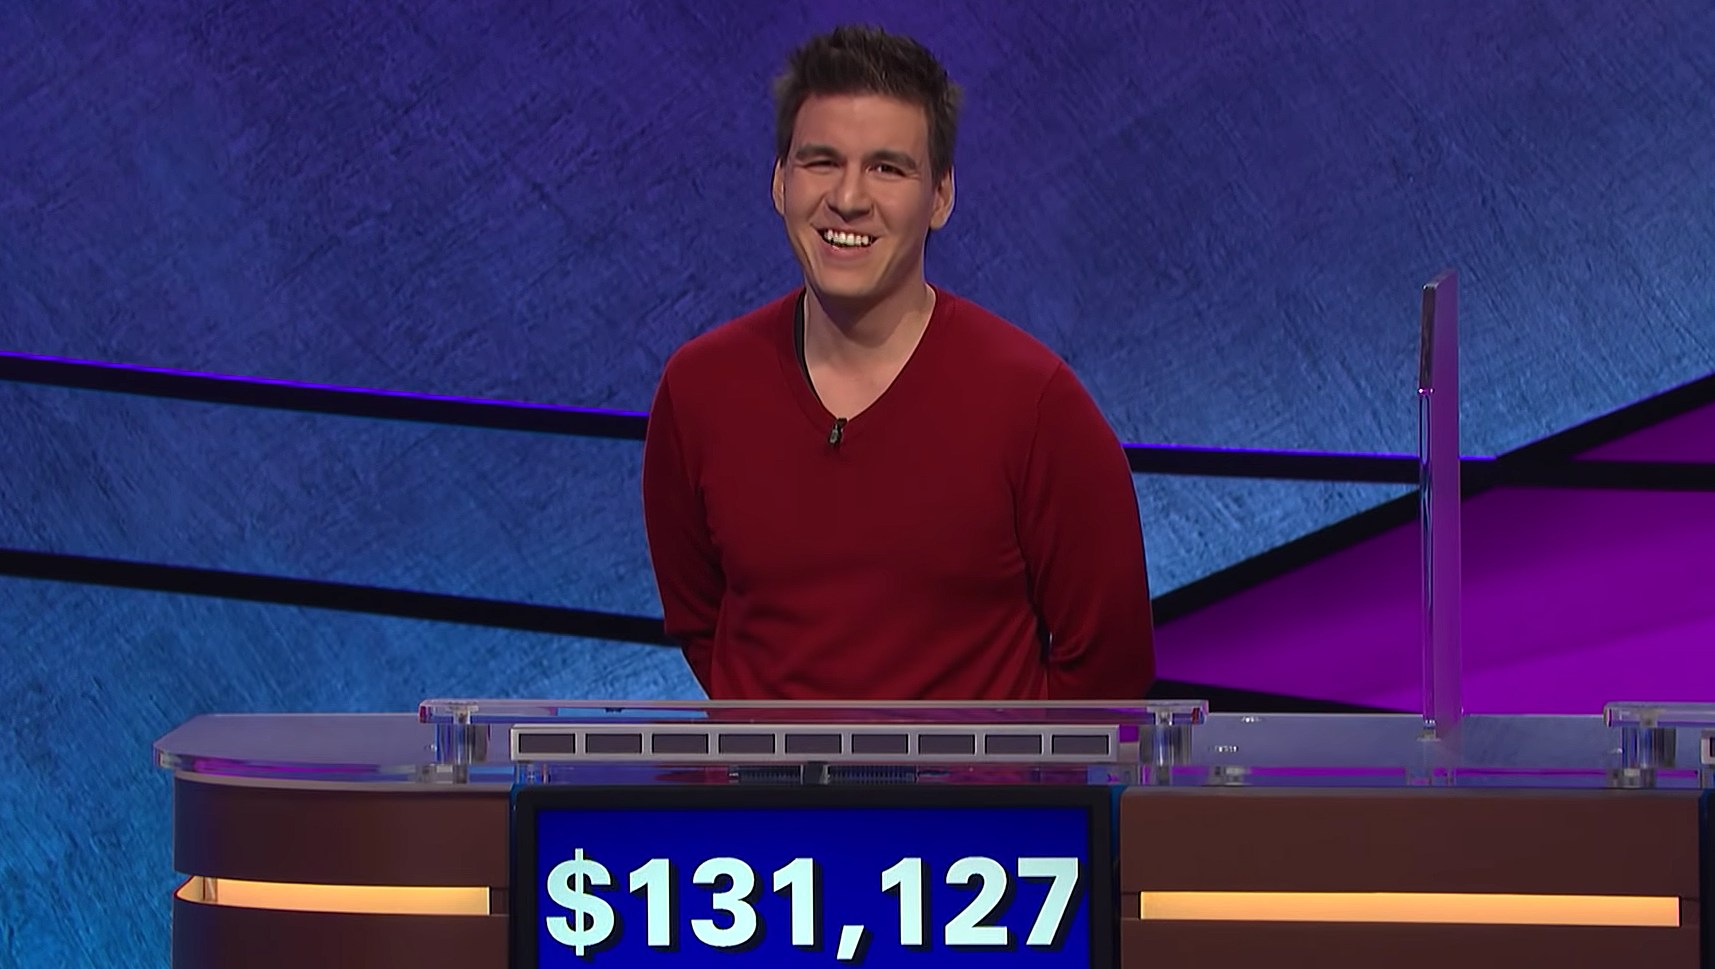 James Holzhauer Breaks His Own Record on Jeopardy